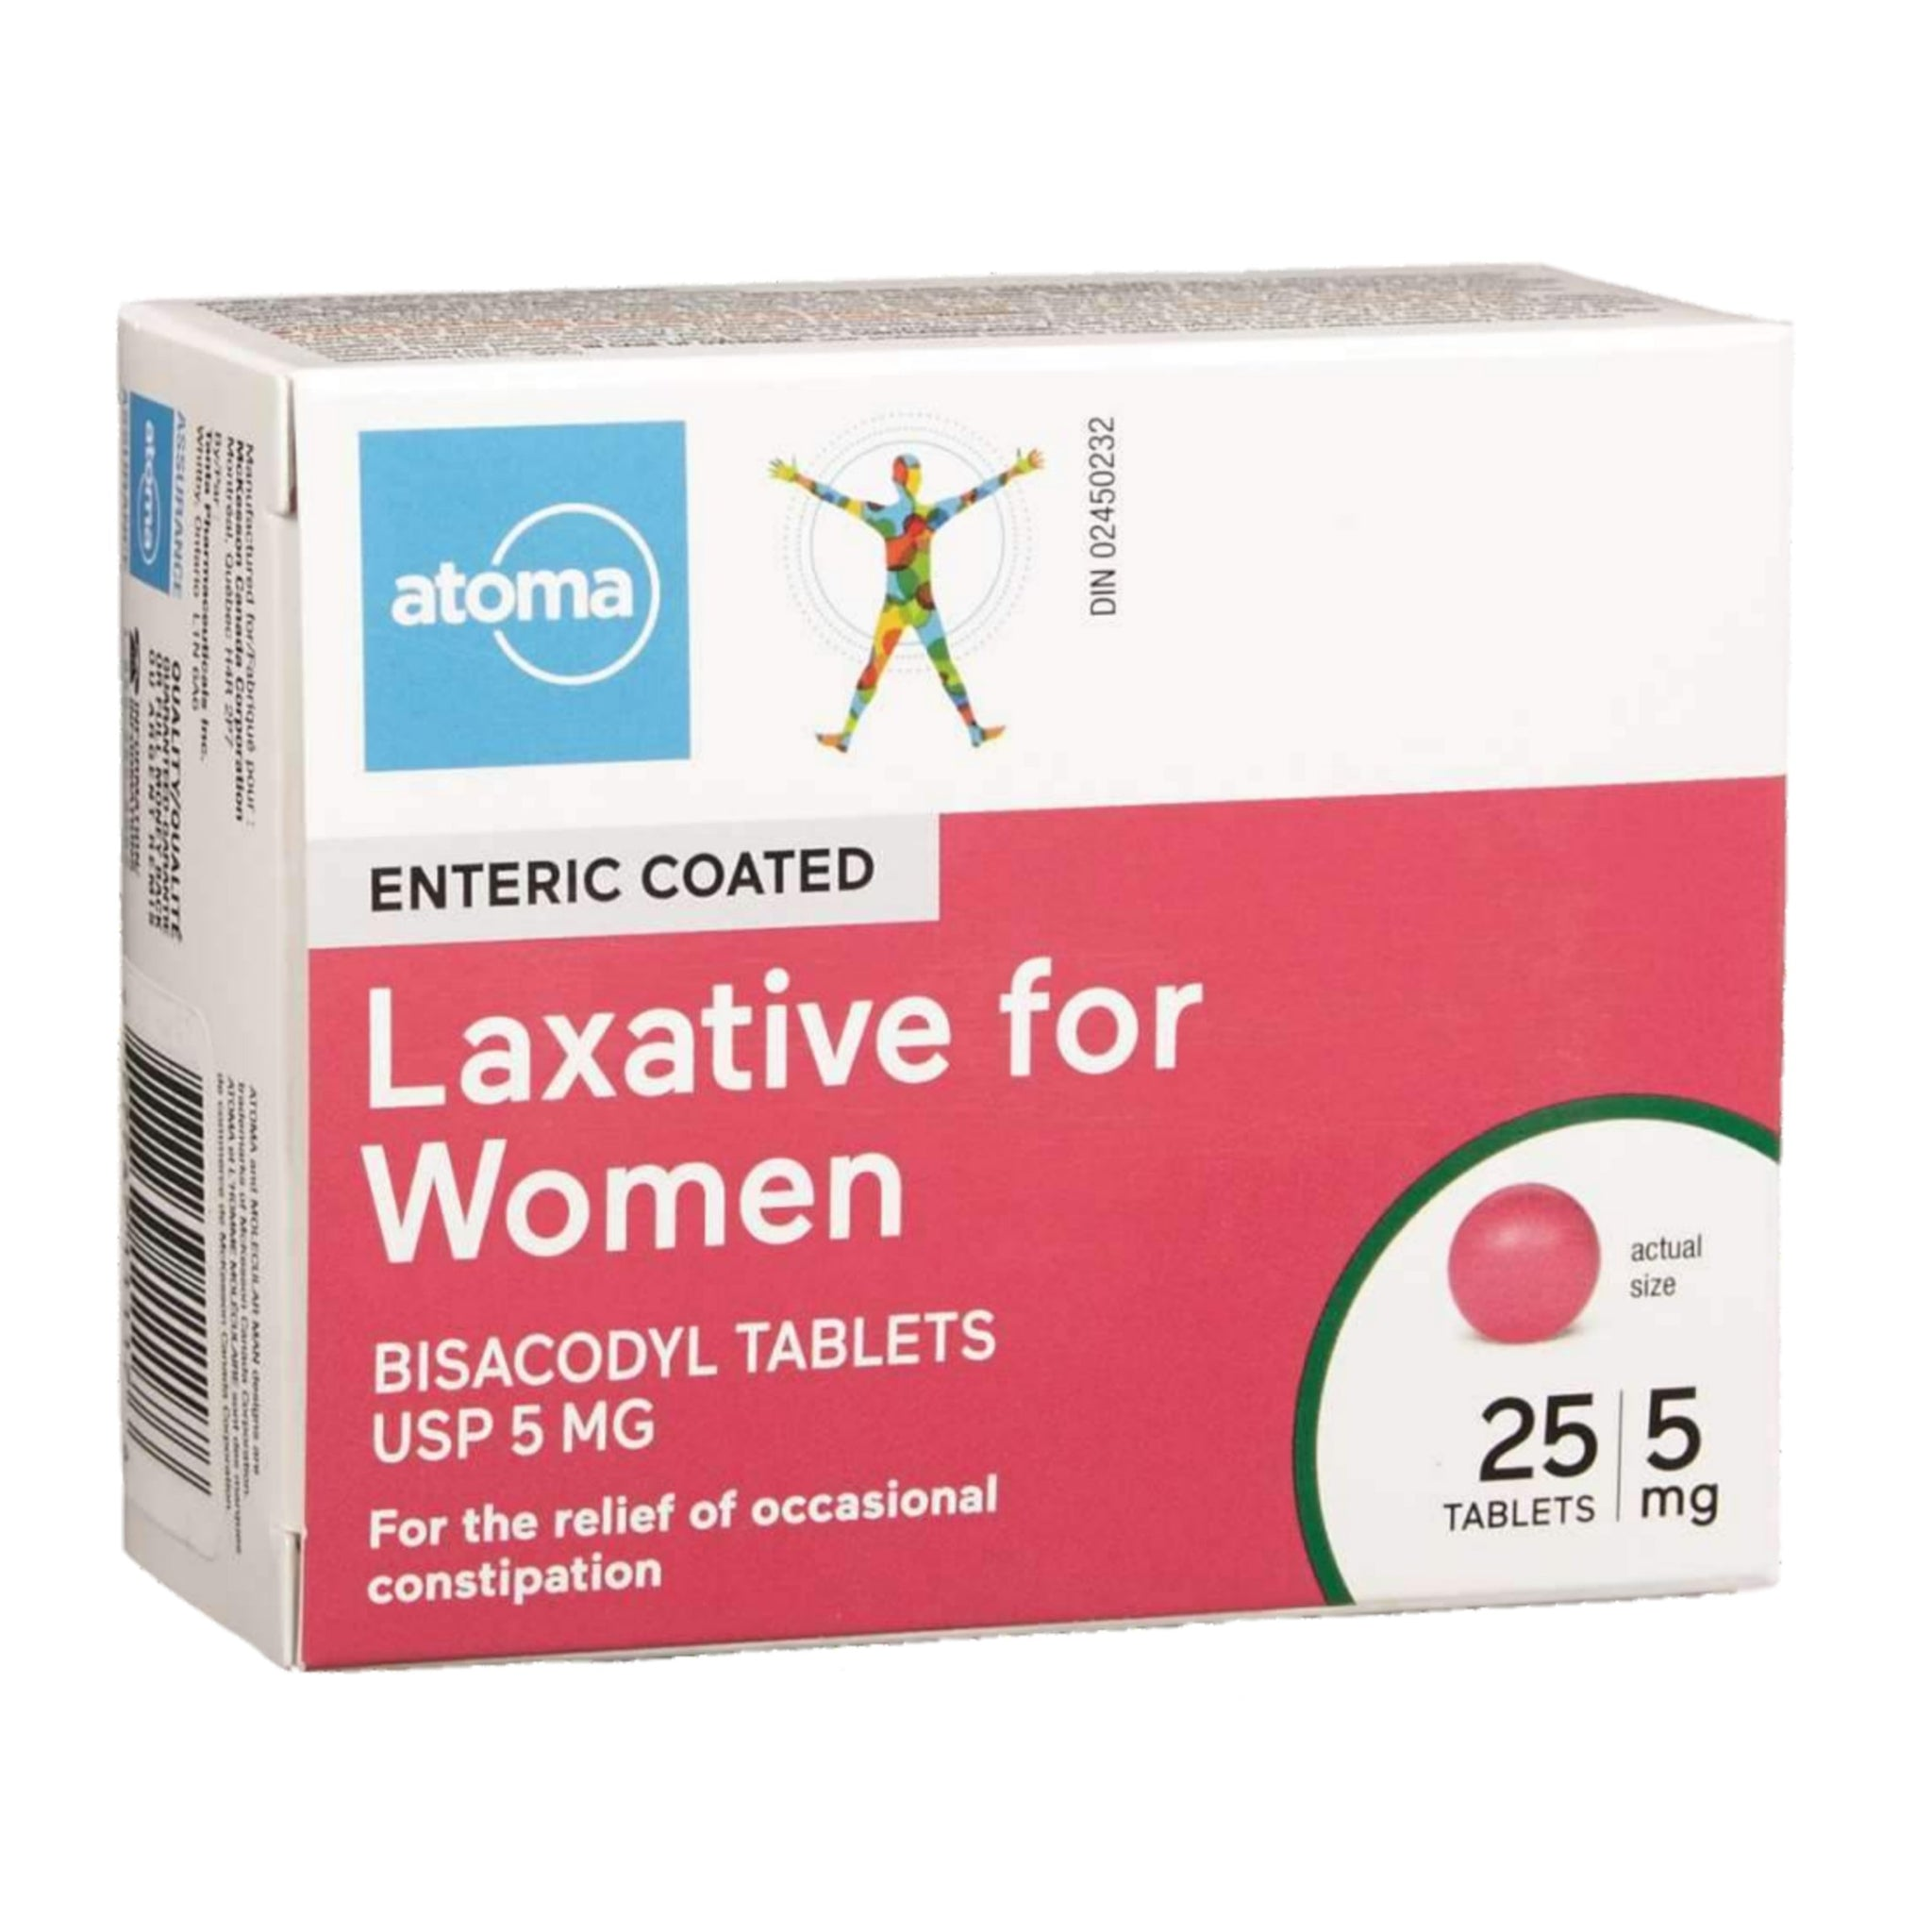 Atoma Laxative for Women 5mg 25 tablets